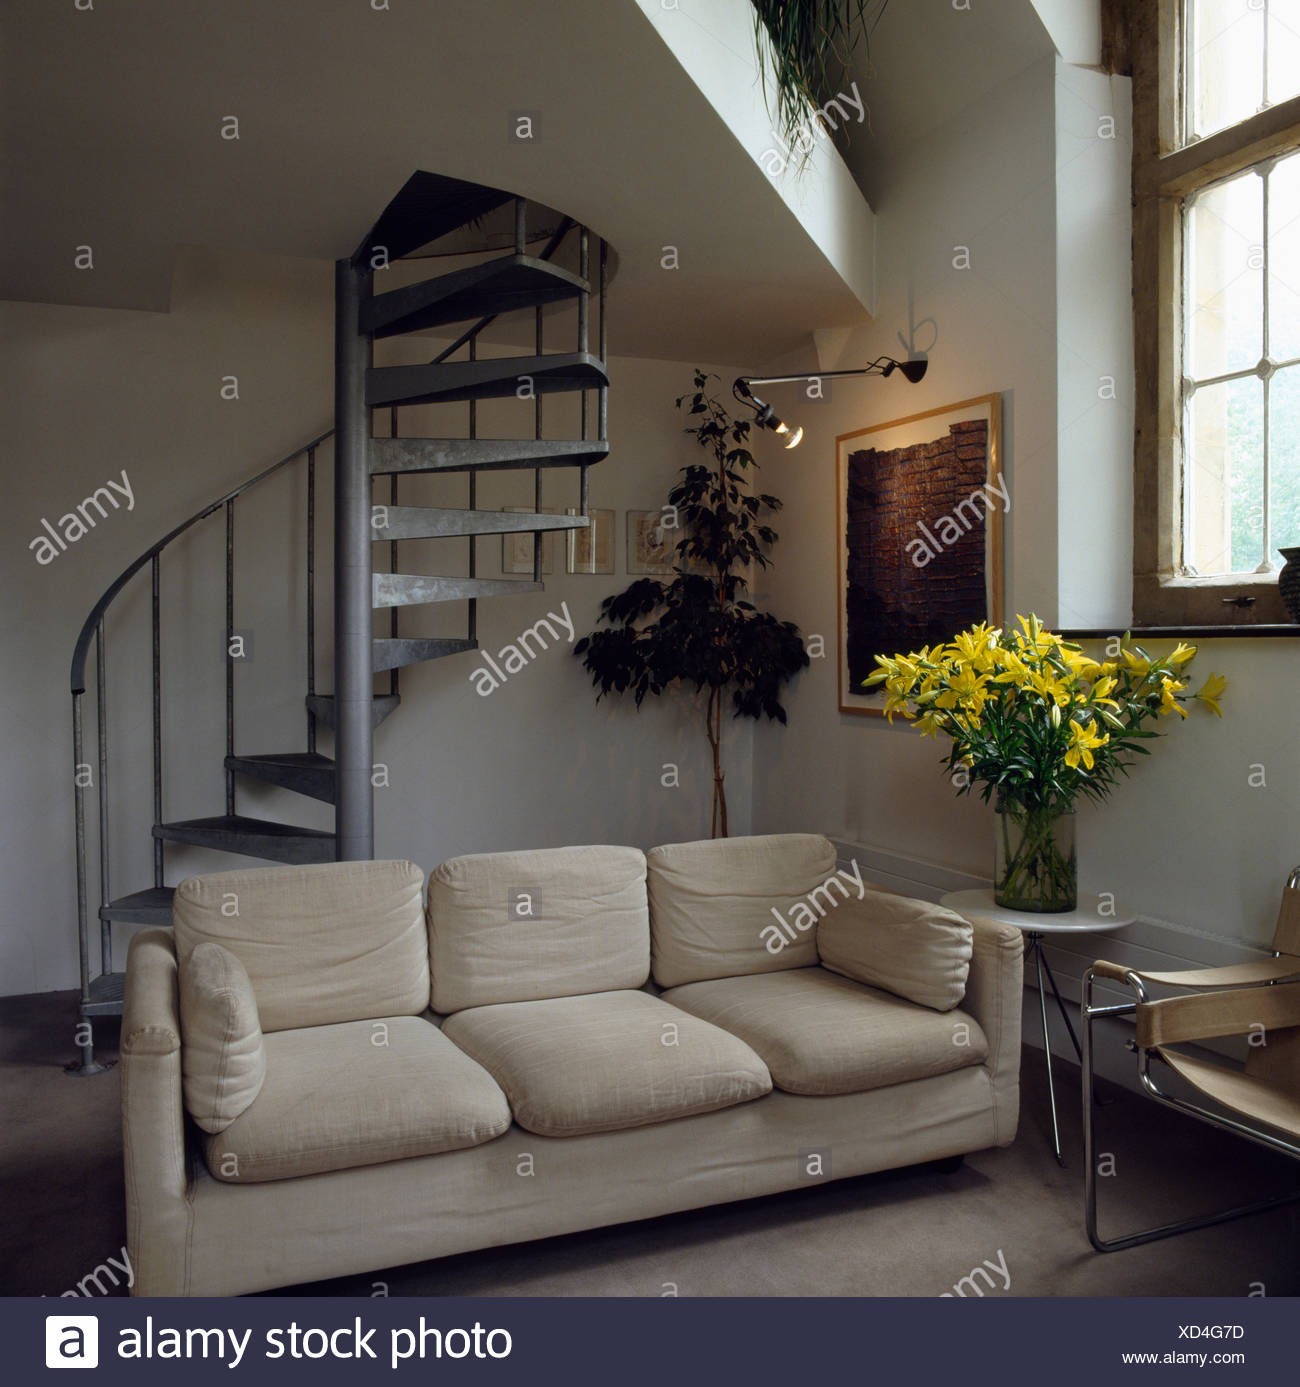 Superb Modern Sofa In Attic Living Room With Spiral Staircase